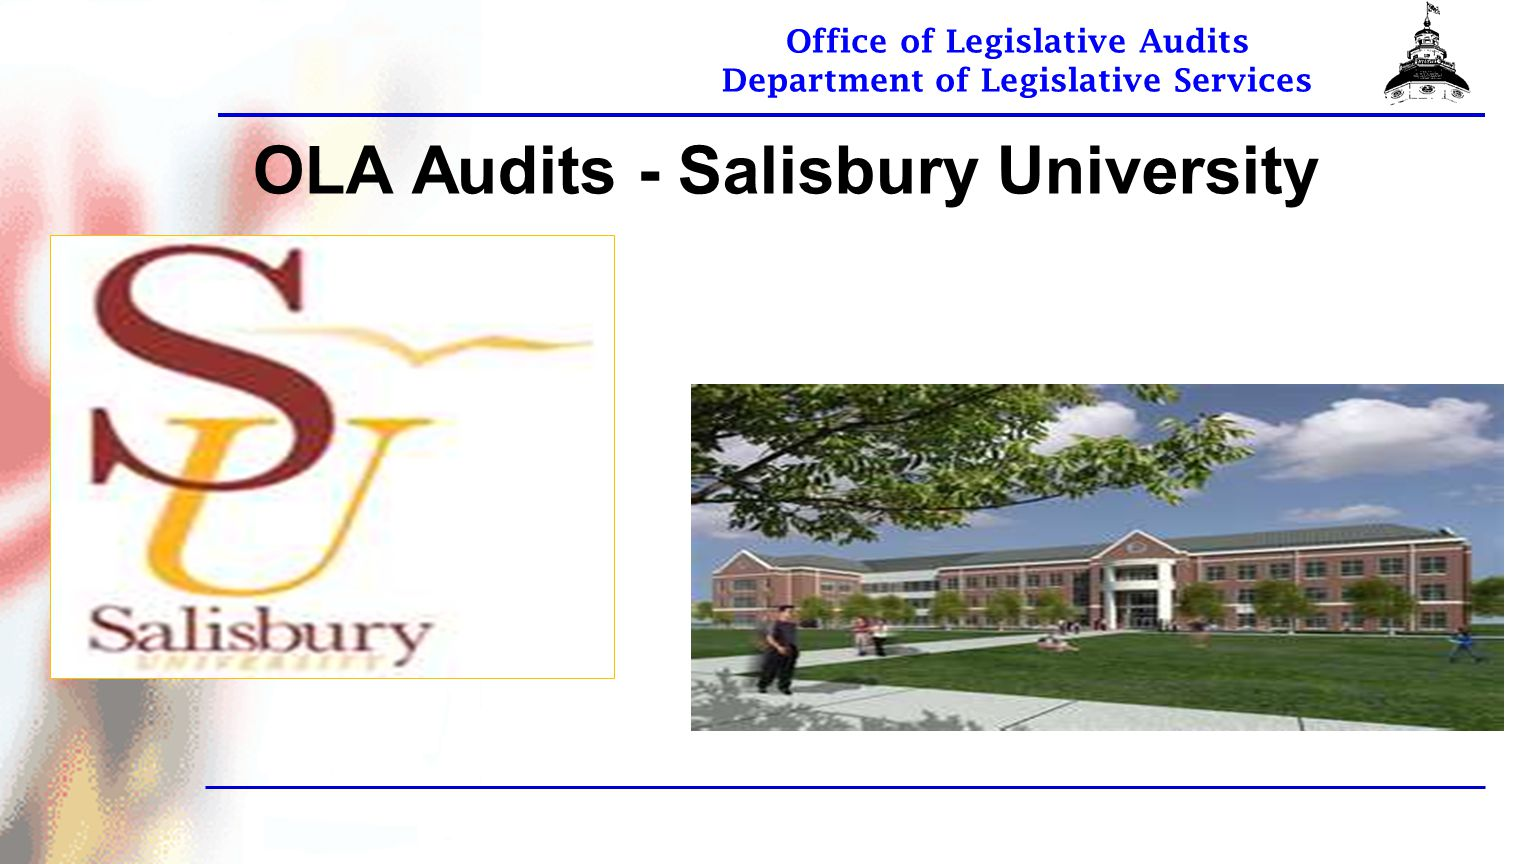 Office of Legislative Audits Department of Legislative Services OLA Audits - Salisbury University